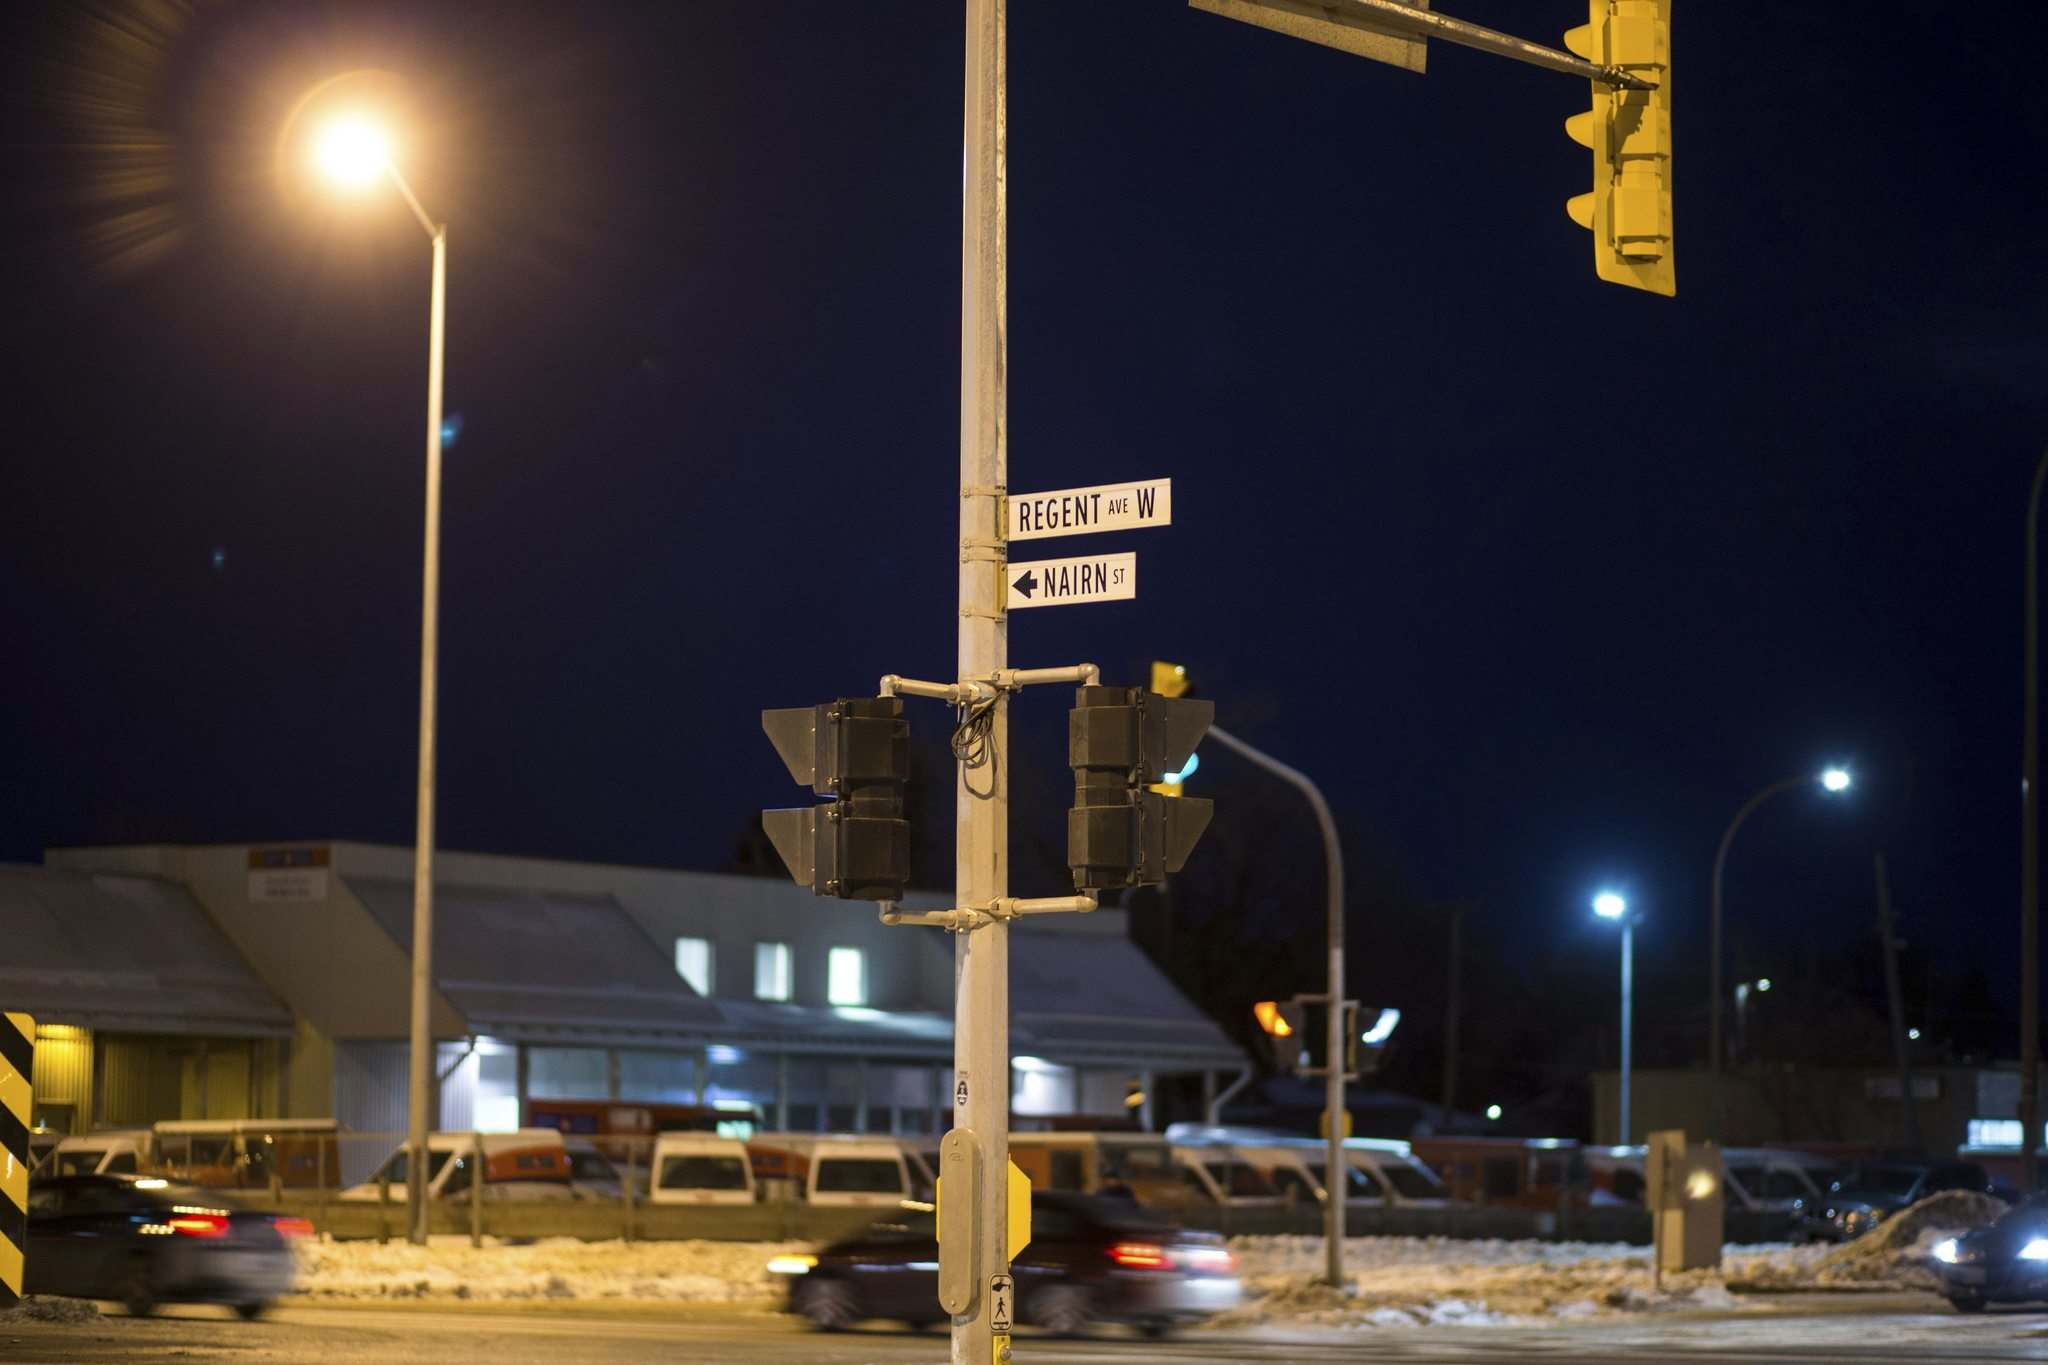 MIKAELA MACKENZIE / WINNIPEG FREE PRESS FILES</p><p>Police shut down the intersection of Panet Road and Nairn Avenue on Thursday to create a containment block with their vehicles during a high-speed pursuit. Three suspects were taken into custody; one was treated for gunshot wounds. The Independent Investigation Unit is investigating the shooting.</p>